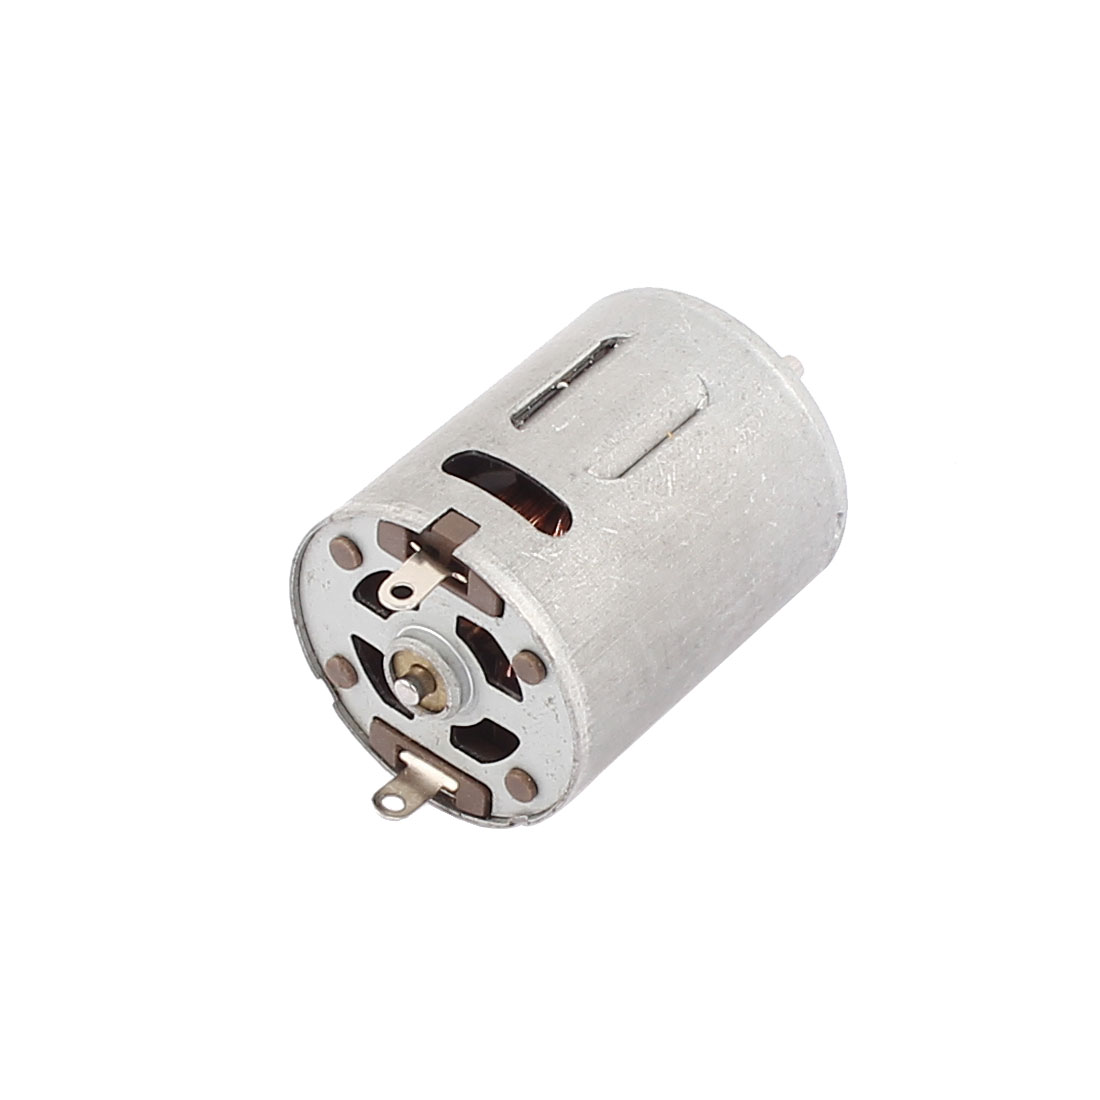 RK-370SD-3550 DC 6-18V 8500RPM Micro Brush Motor for RC Aircraft Toys